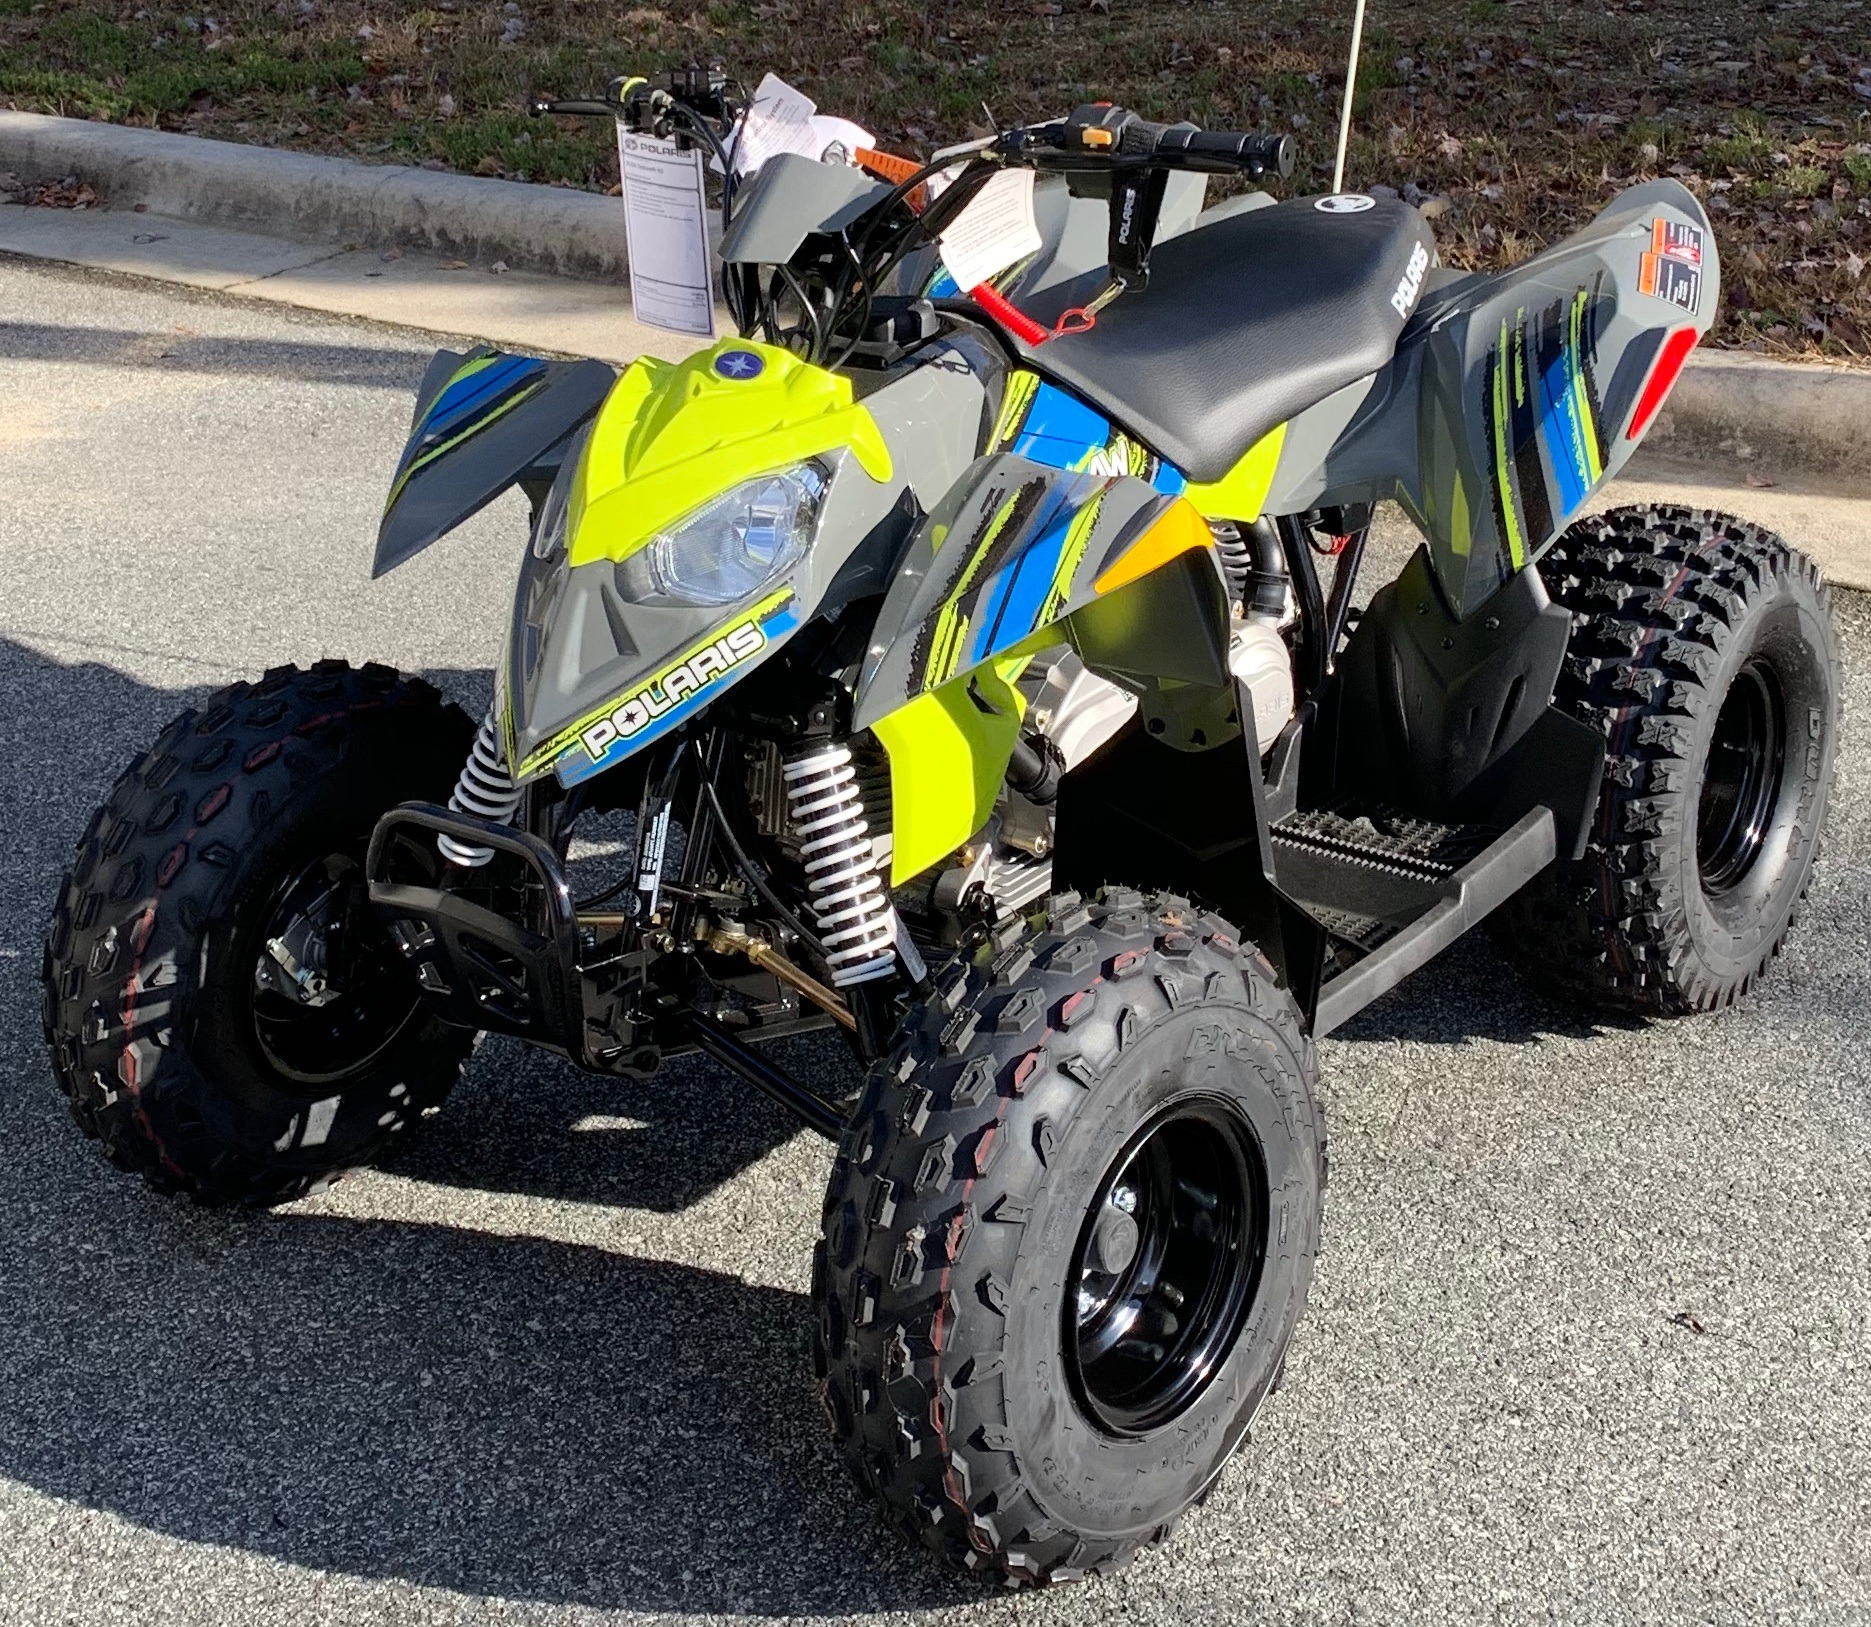 2019 Polaris Outlaw 110 in High Point, North Carolina - Photo 1